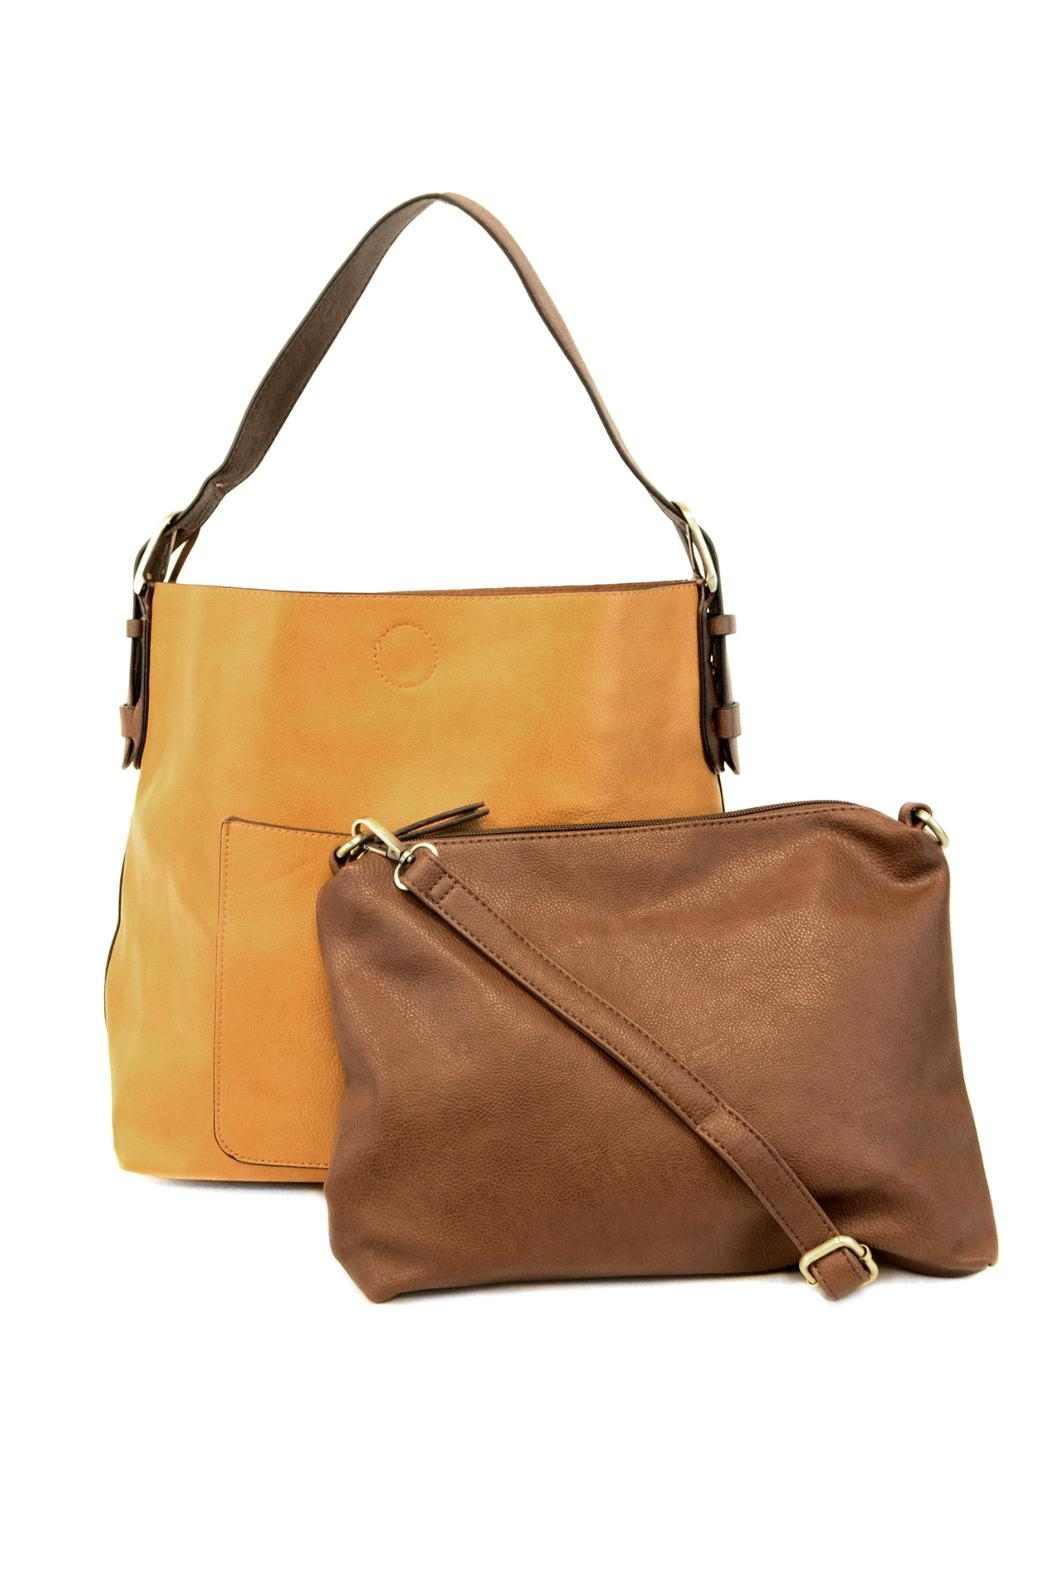 e51450a78d Joy Susan Accessories Classic Hobo Handbag from Chicago by What She ...